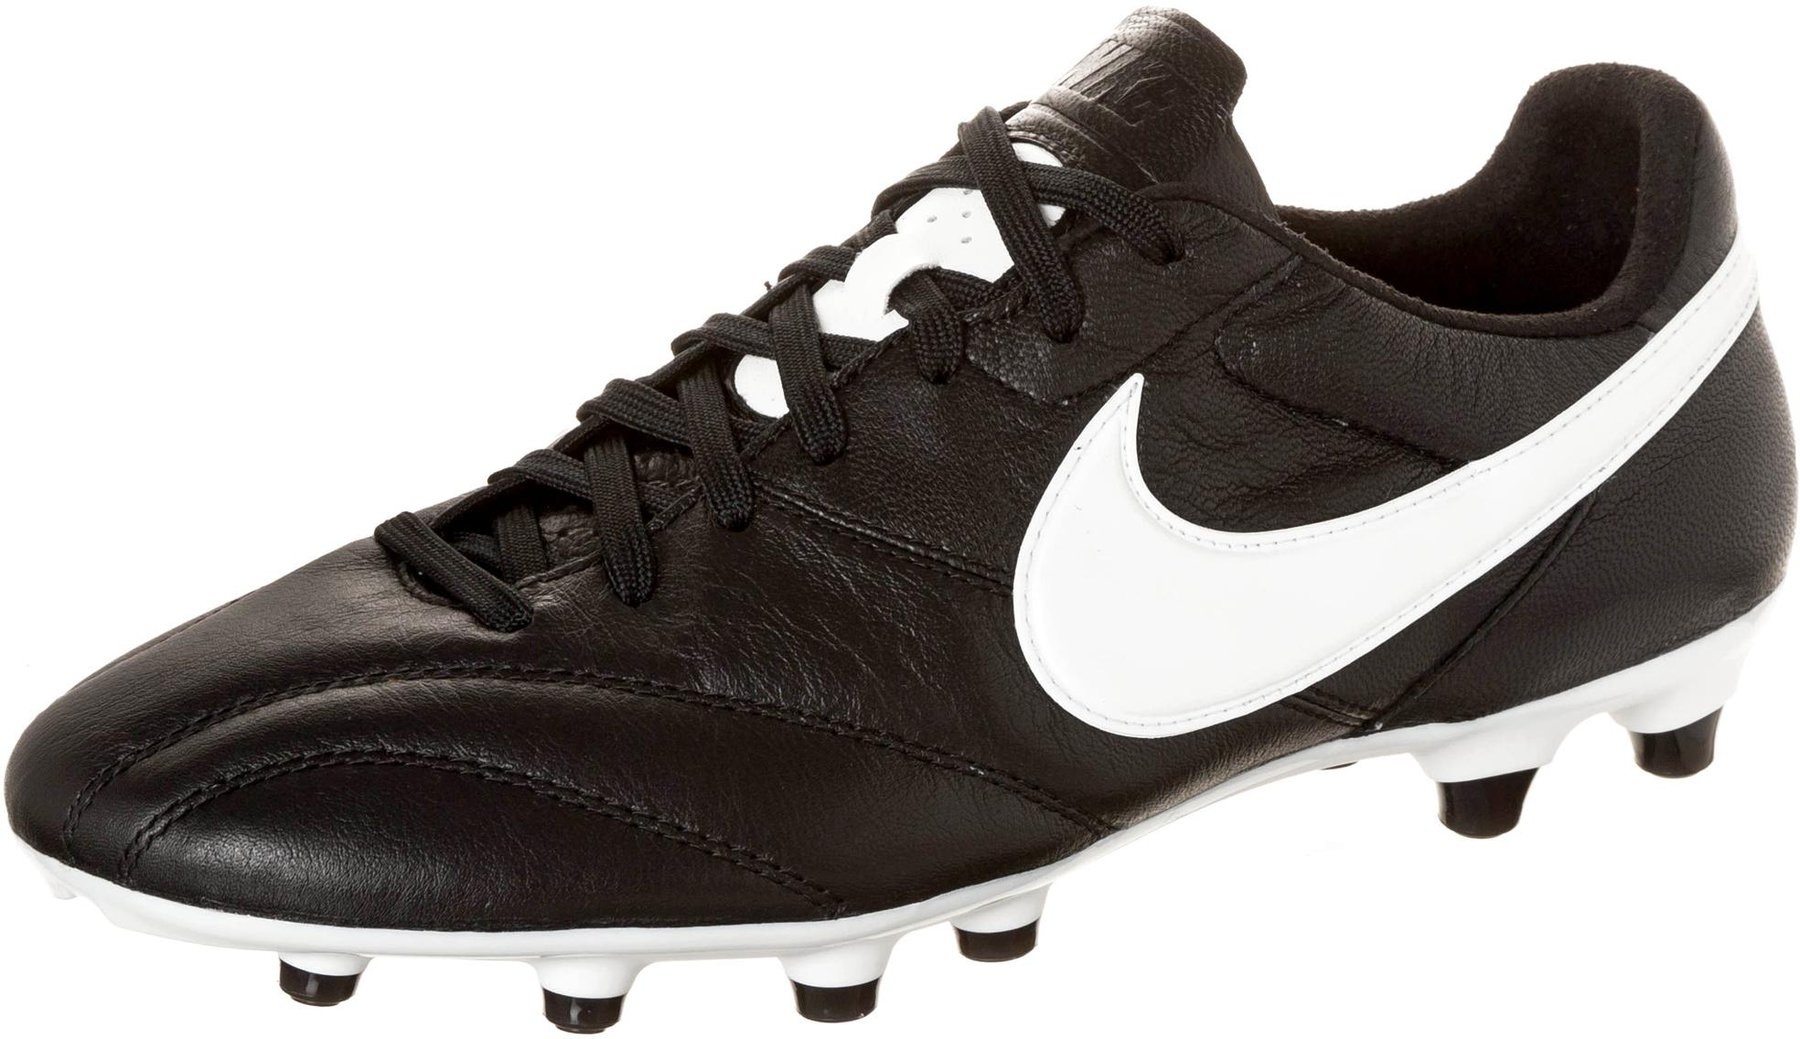 cozy fresh innovative design order online Nike Premier FG